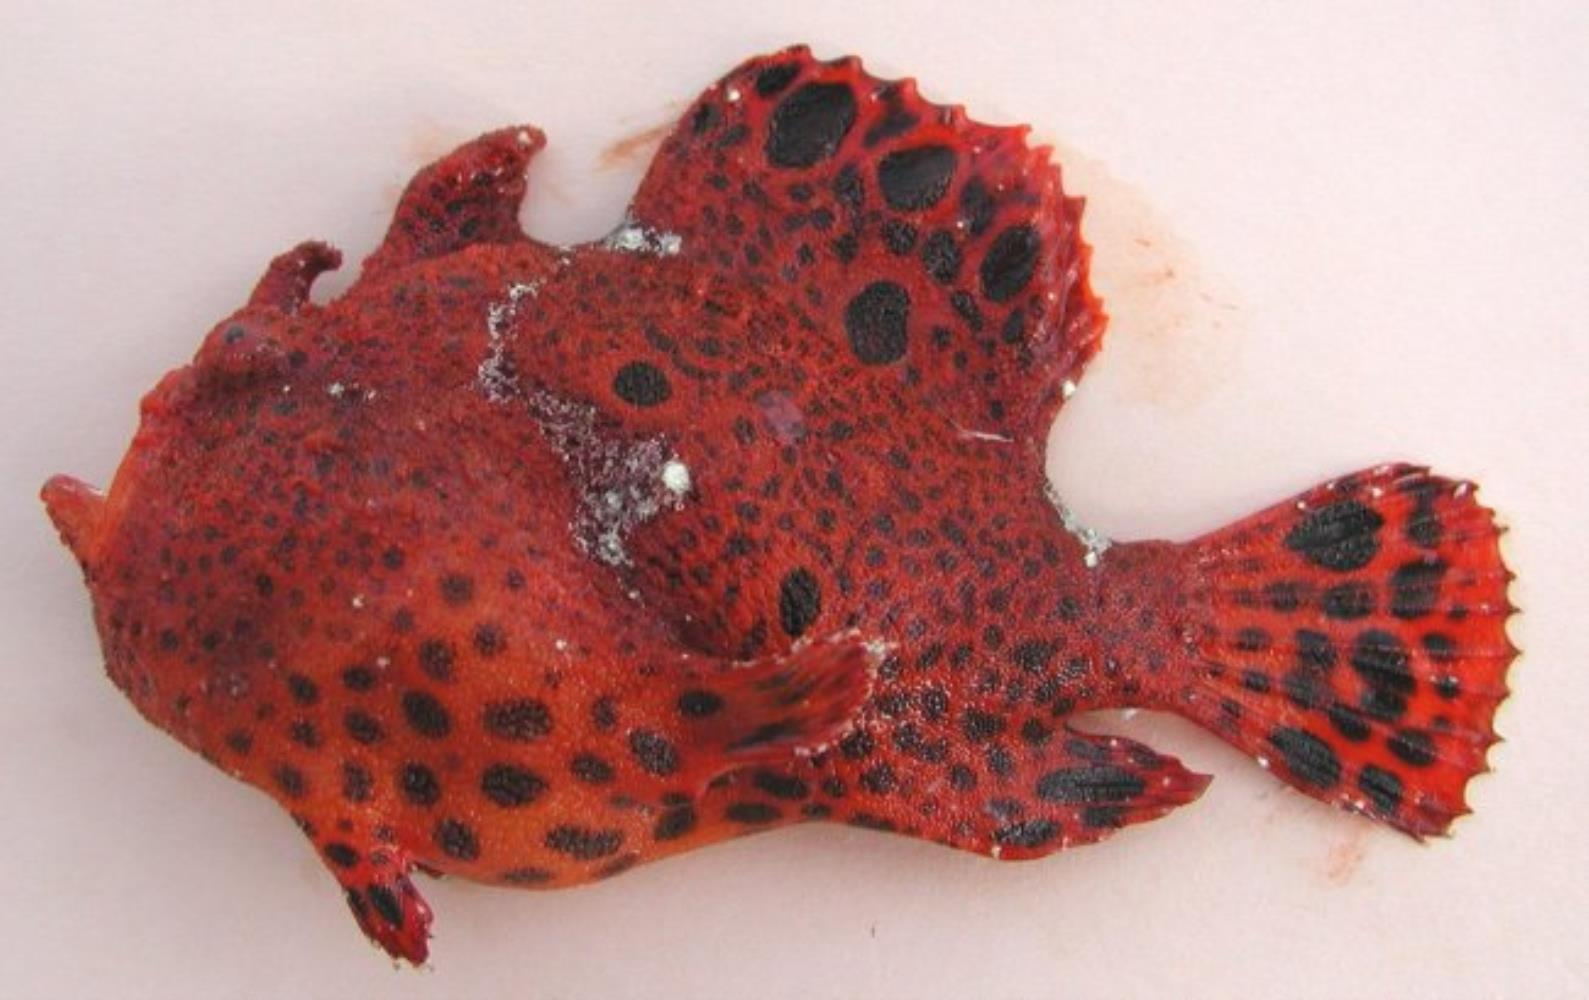 Leopard Frogfish